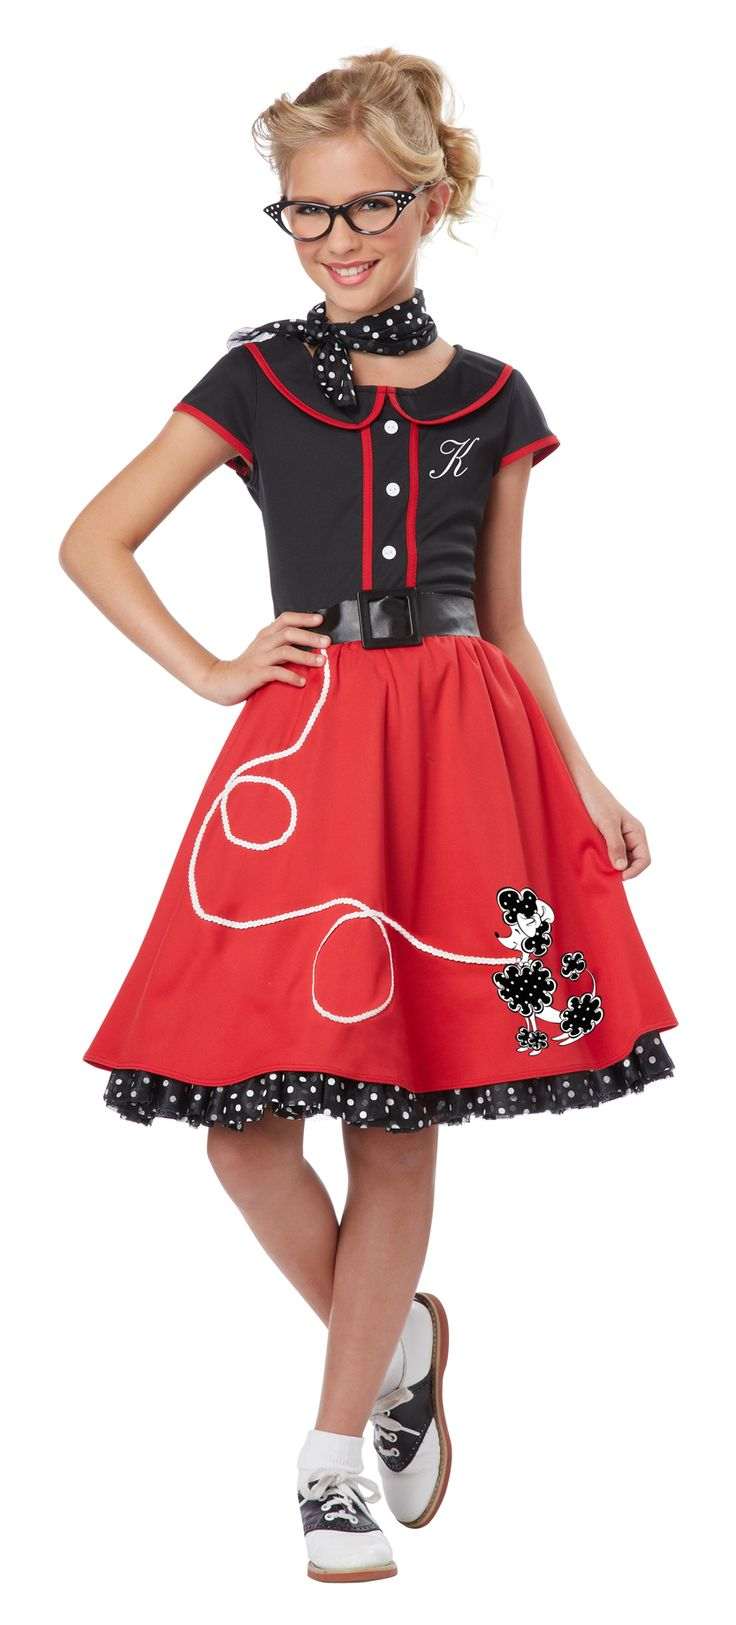 50s Sweetheart Girls Sock Hop Costume- A cute throwback costume for summer sock hop or fifties parties, the 50s Sweetheart Girls Sock Hop Costume is a cute and colorful costume for young or tween girls.  This is a fun and fresh option for school parties and community dances.  Easy to dress up with saddle shoes and hair ribbons, the 50s Sweetheart Girls Sock Hop Costume is a fun option for young girls for professional photography. #50s #poodleskirt #kids #yyc #costume #calgary #retro